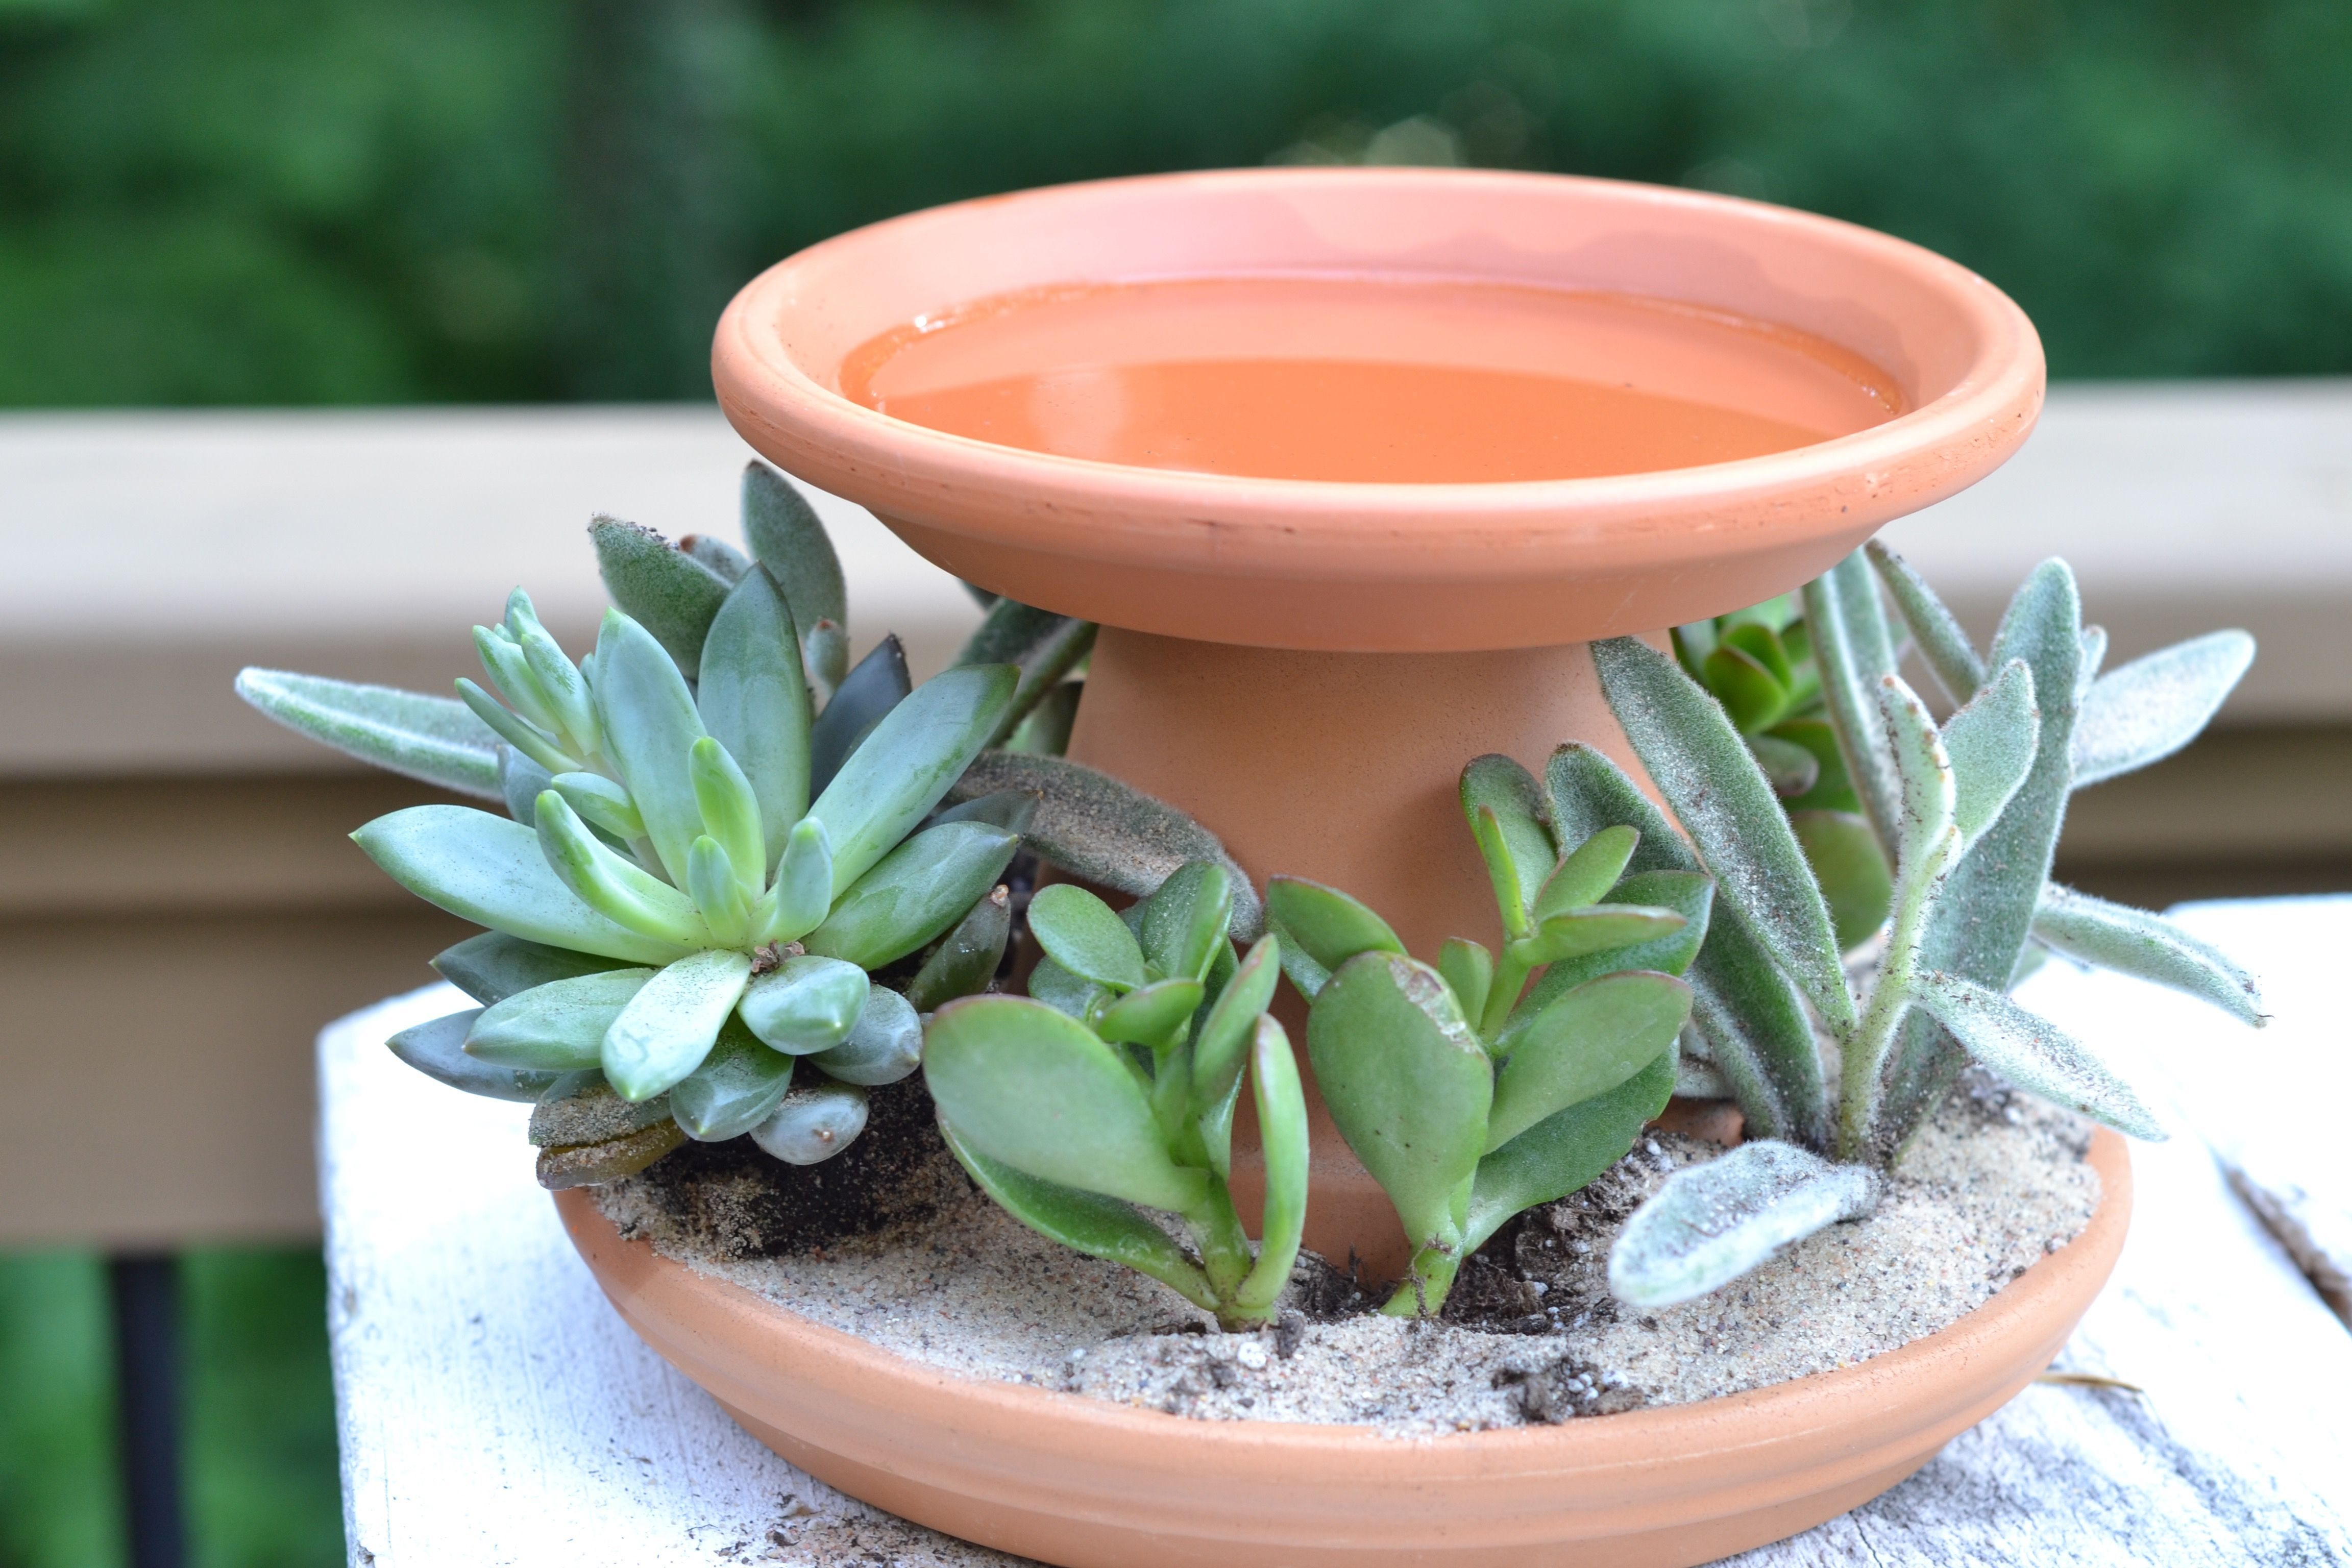 Planters & Bird Baths Create your own succulent planter that can serve as a bird bath, candle holder or trinket tray. The fantastic project comes with terra cotta pots and dishes, 4 succulent/cacti plants, sand, soil, actiCreate your own succulent planter that can serve as a bird bath, candle holder or trinket tray. The fantastic project comes with...